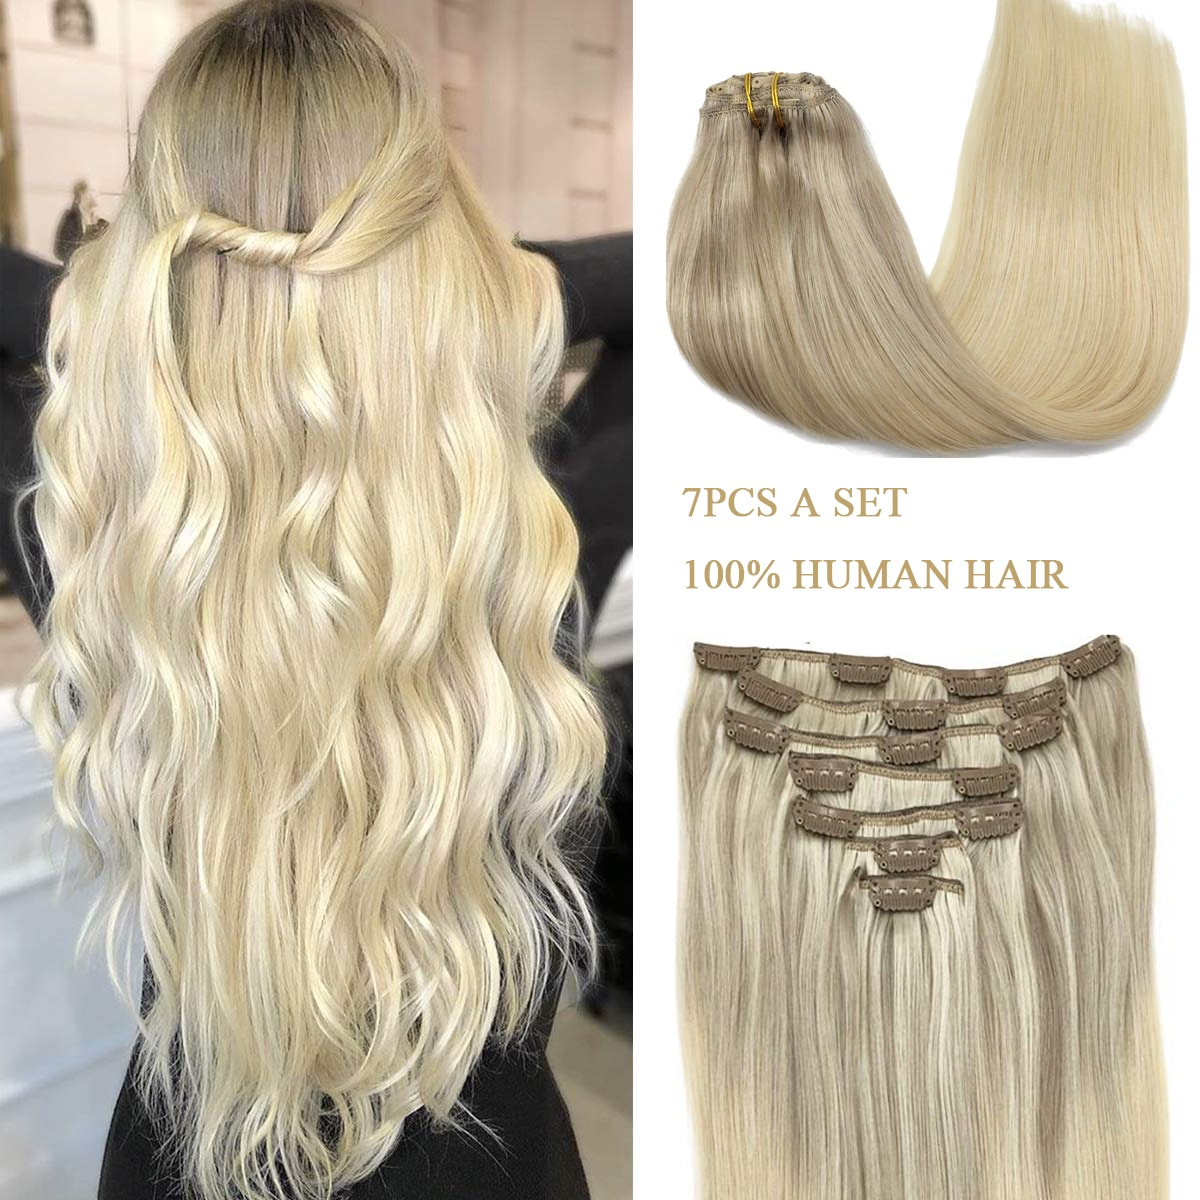 Human Hair Clip in Extensions Full Head 14inch-24inch Human Remy Hair Blonde Natural Thick Clip in Hair extensions 7pcs Set 120G